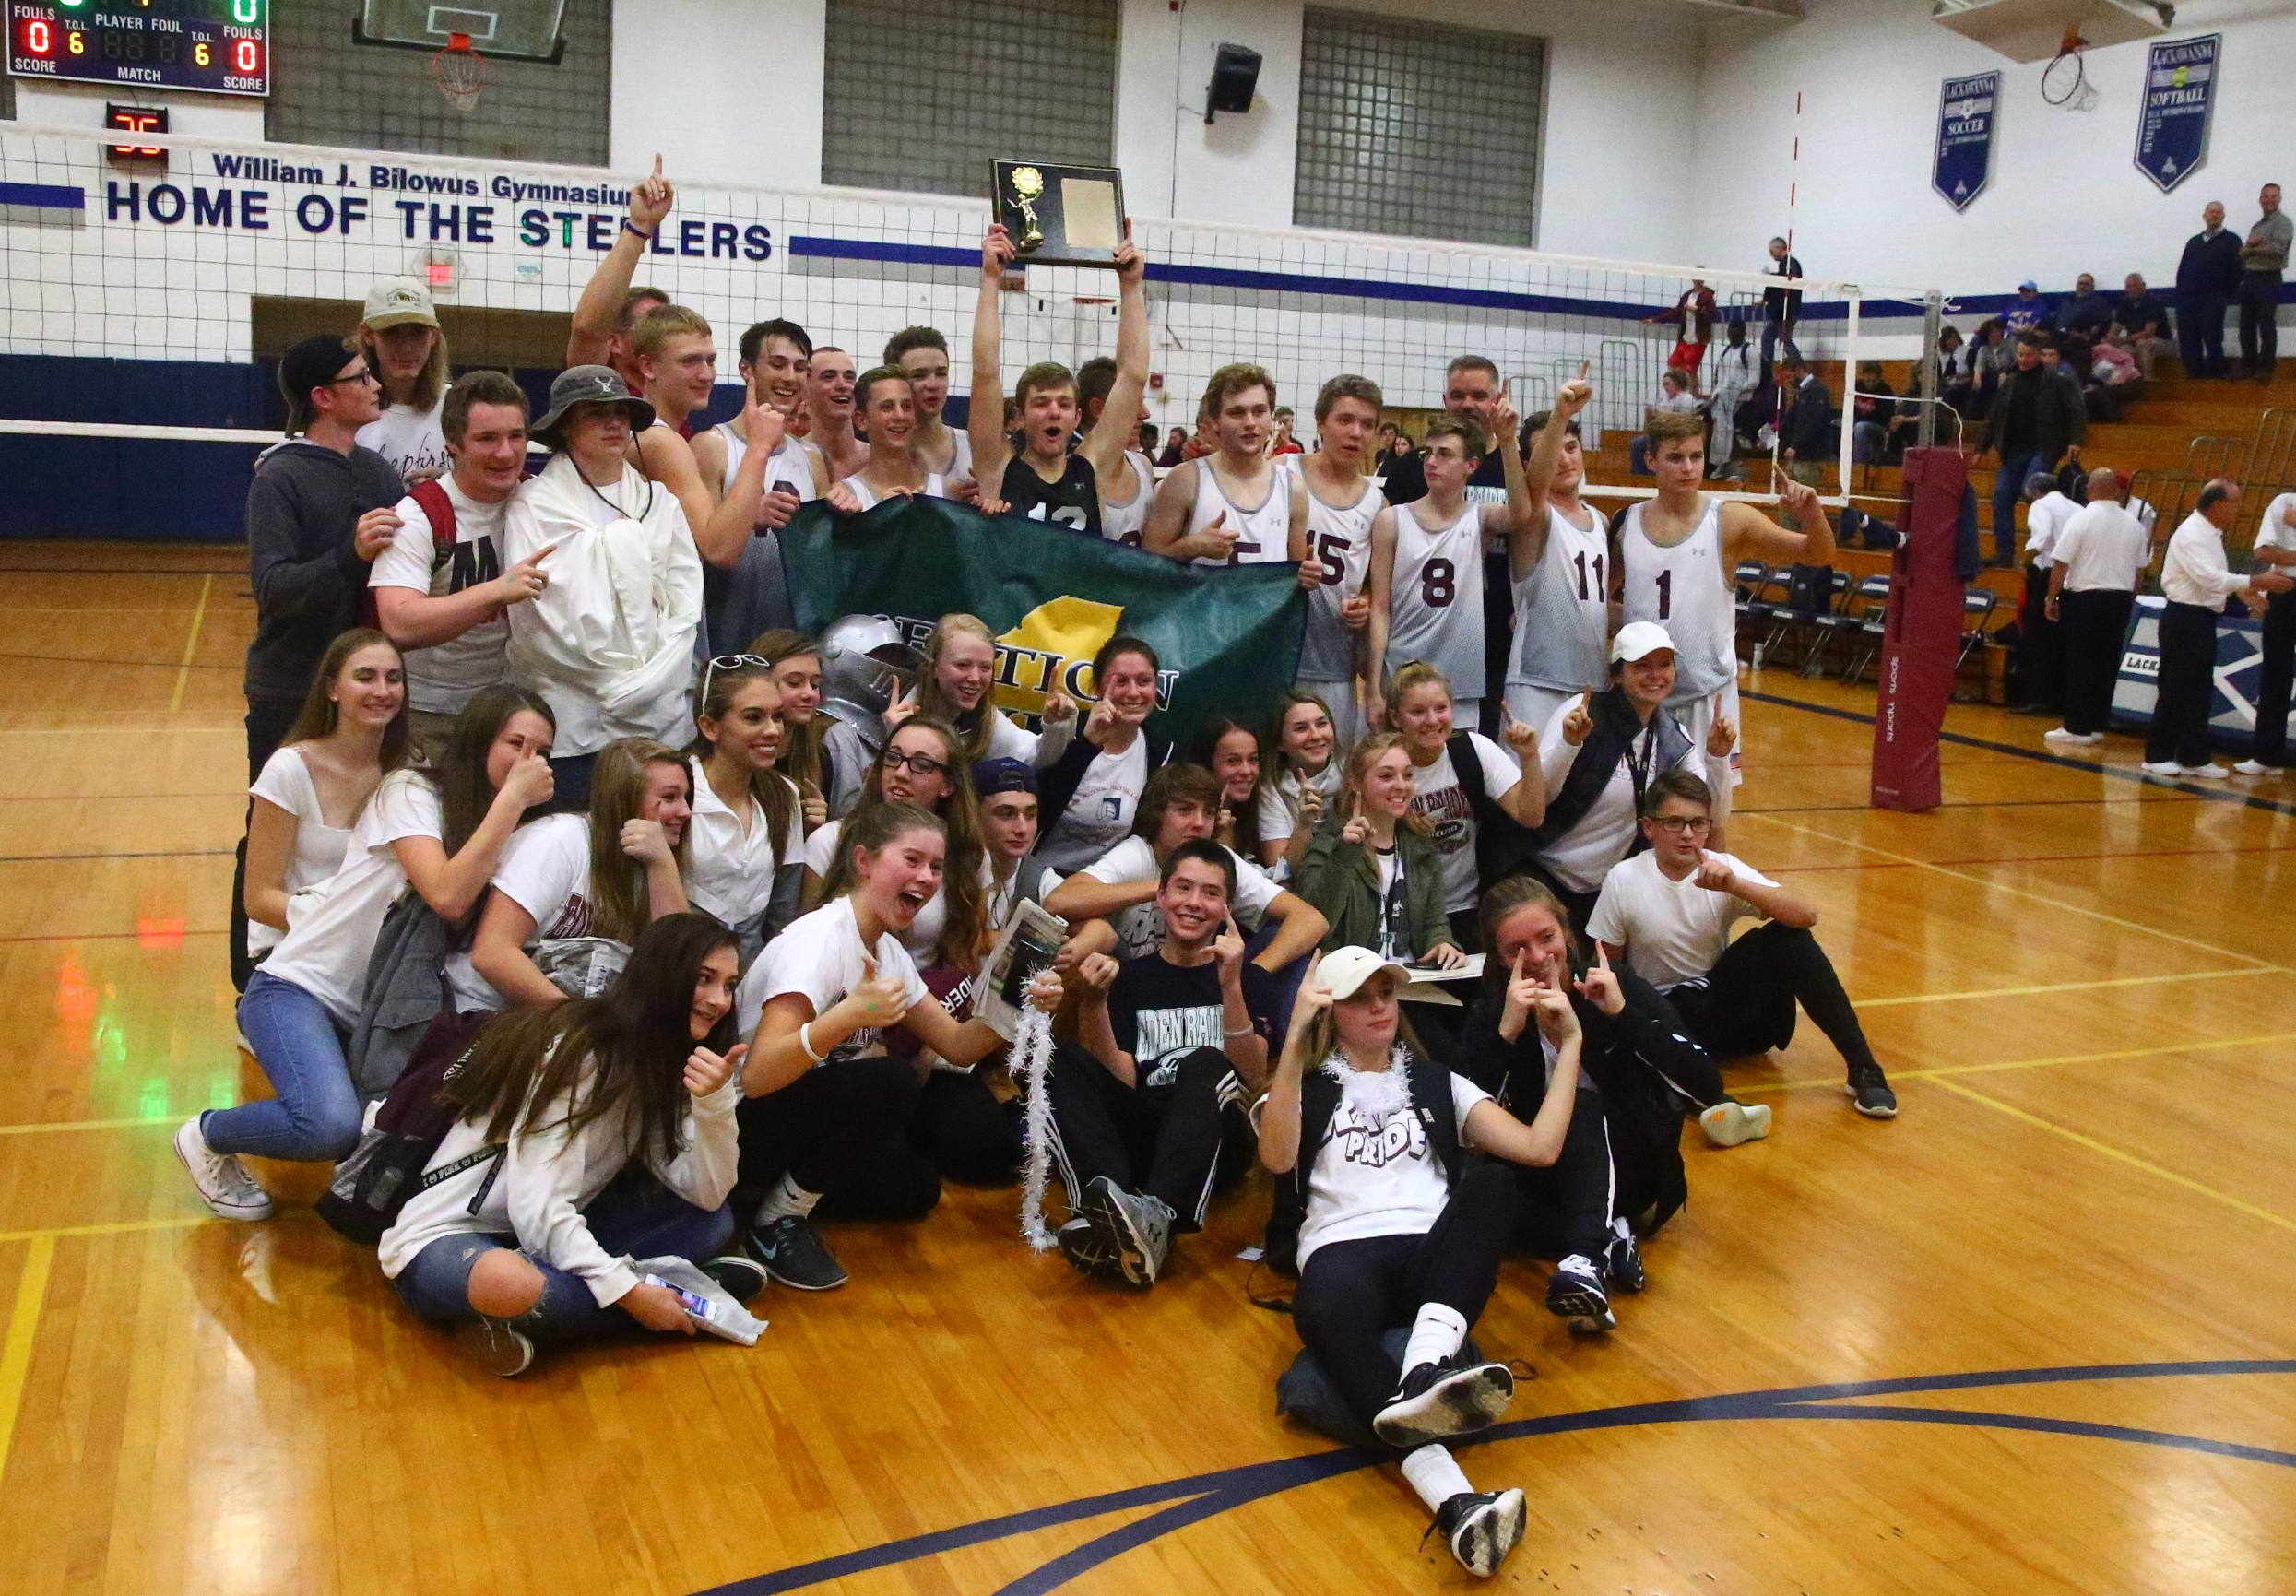 Eden celebrates its sweep of Maryvale with its supporters (John Hickey/Buffalo News)